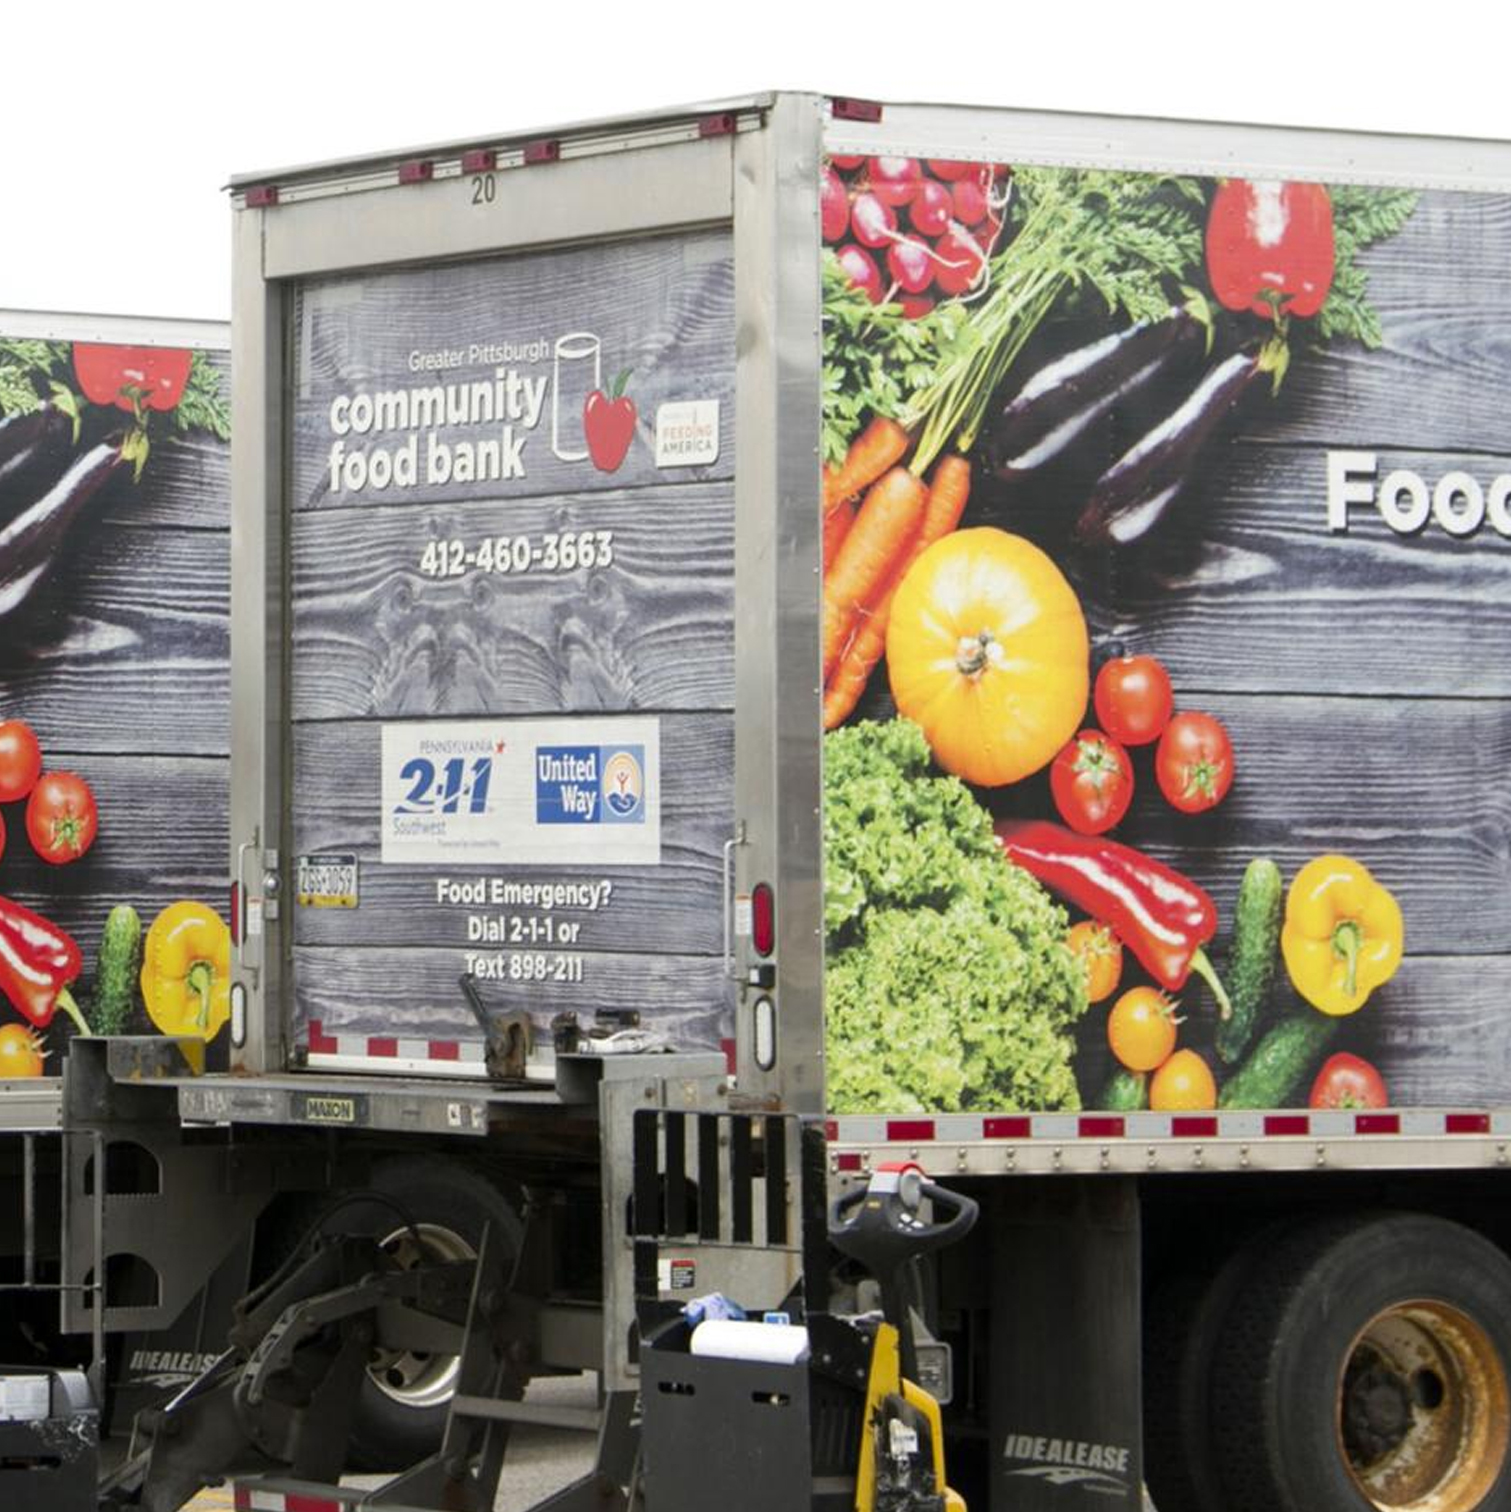 Pittsburgh Community Food Bank trucks